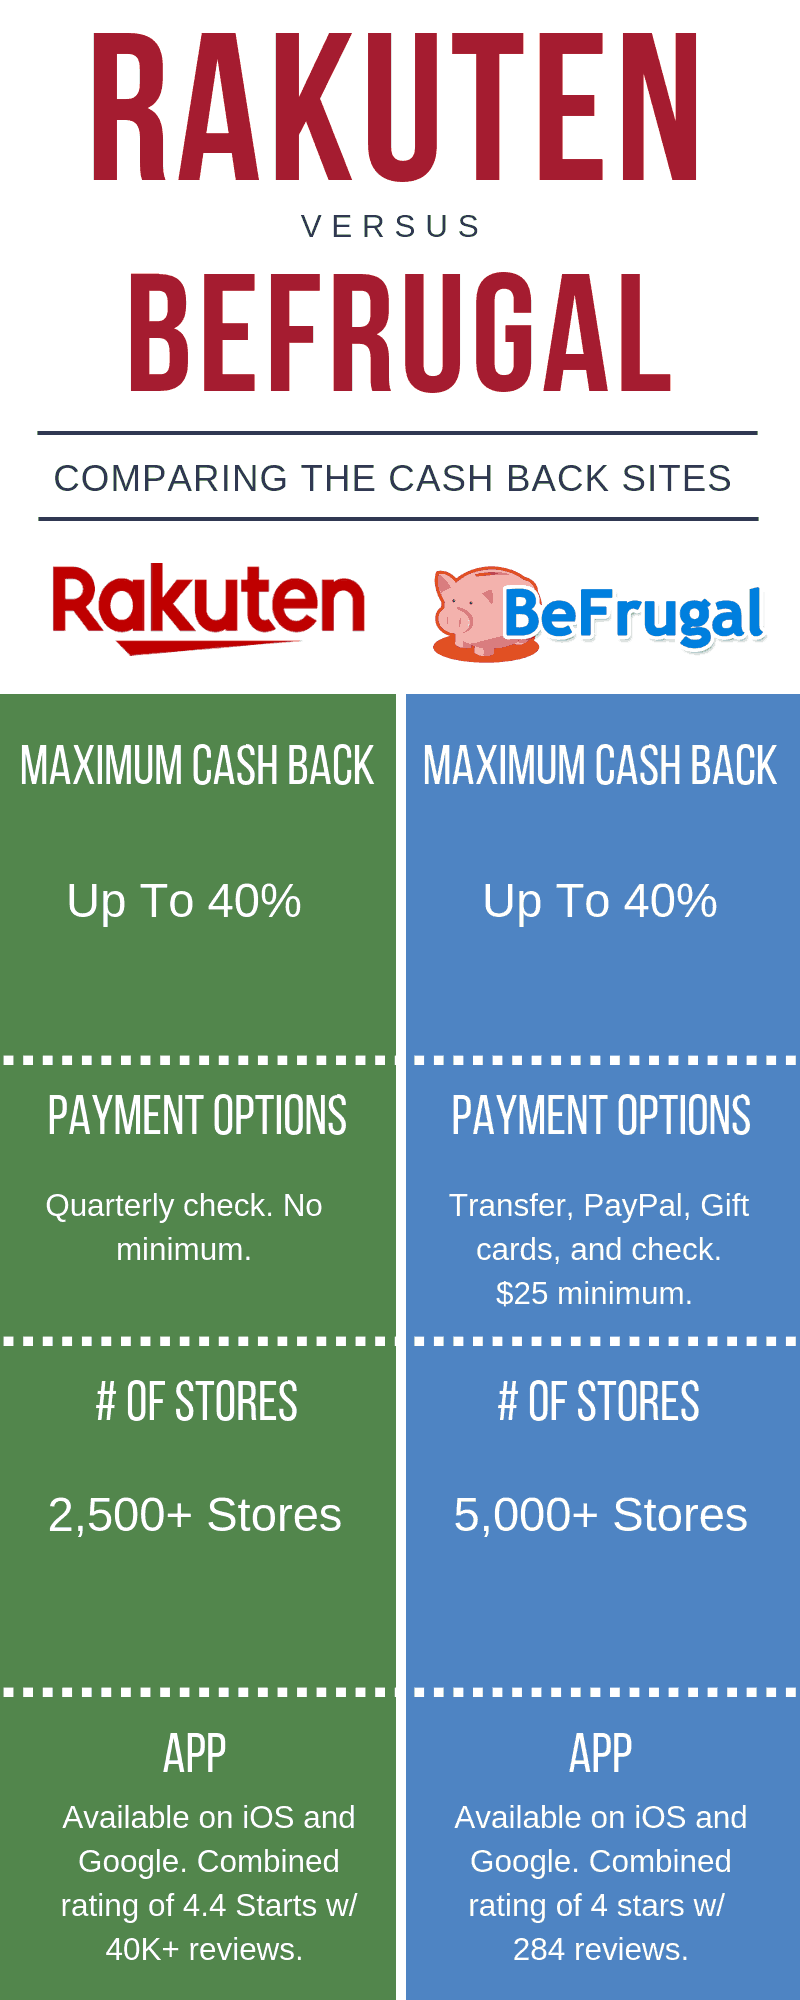 BeFrugal vs Rakuten - a comparison table